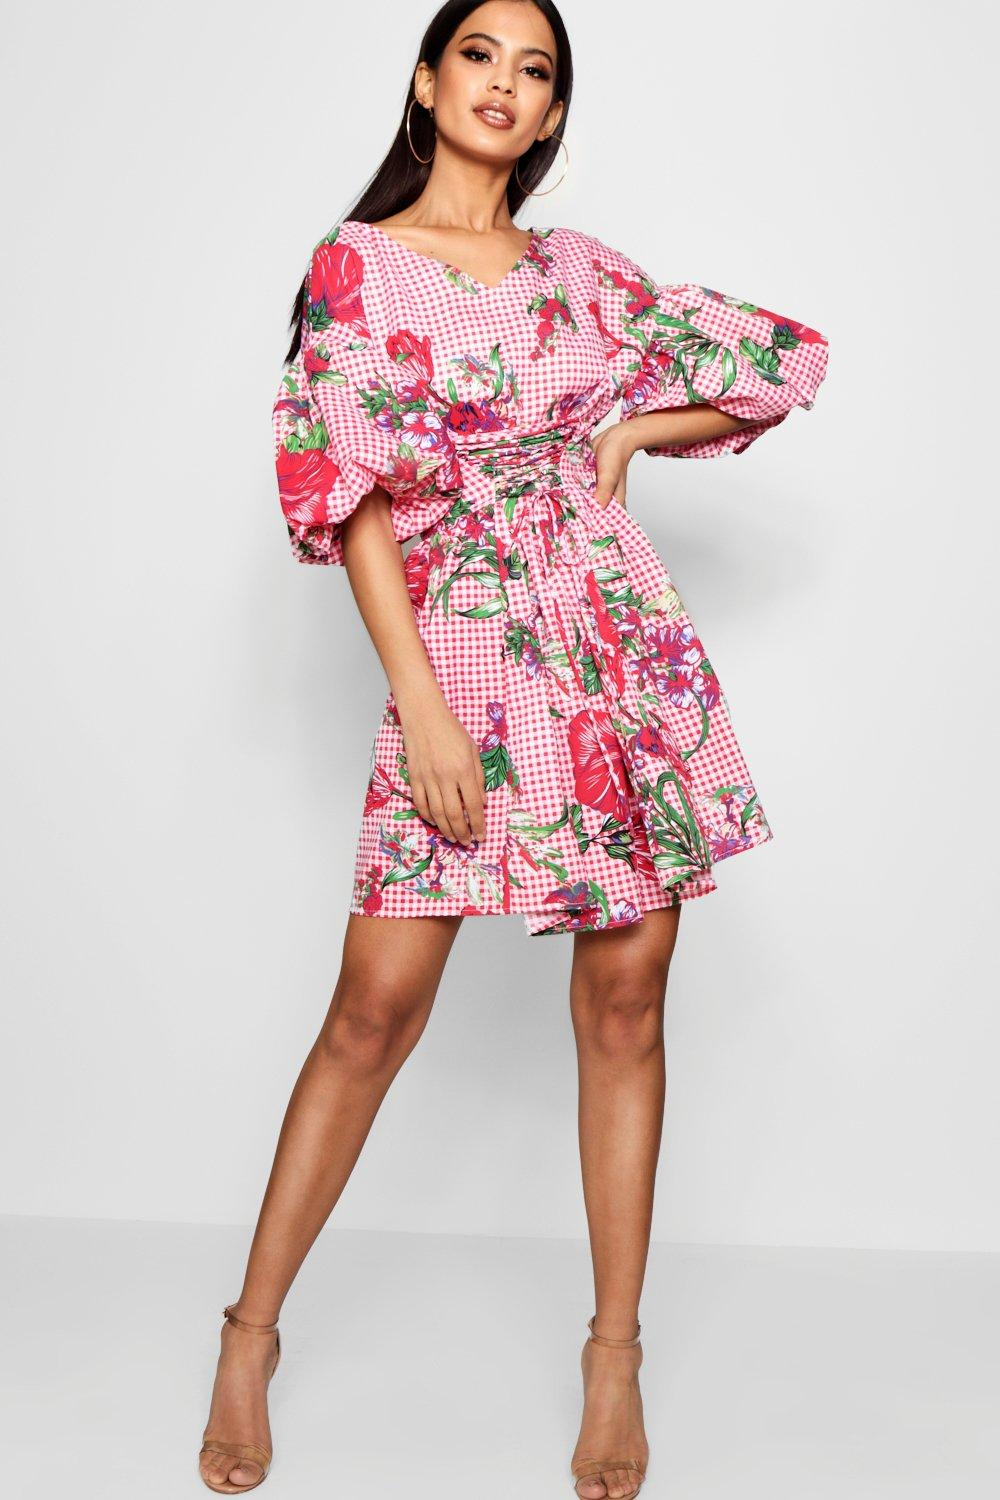 Boohoo Vende bien Lace Up Front Volume Sleeve Skater Dress Boohoo - Mujer Ropa Comprar IMWGIRR